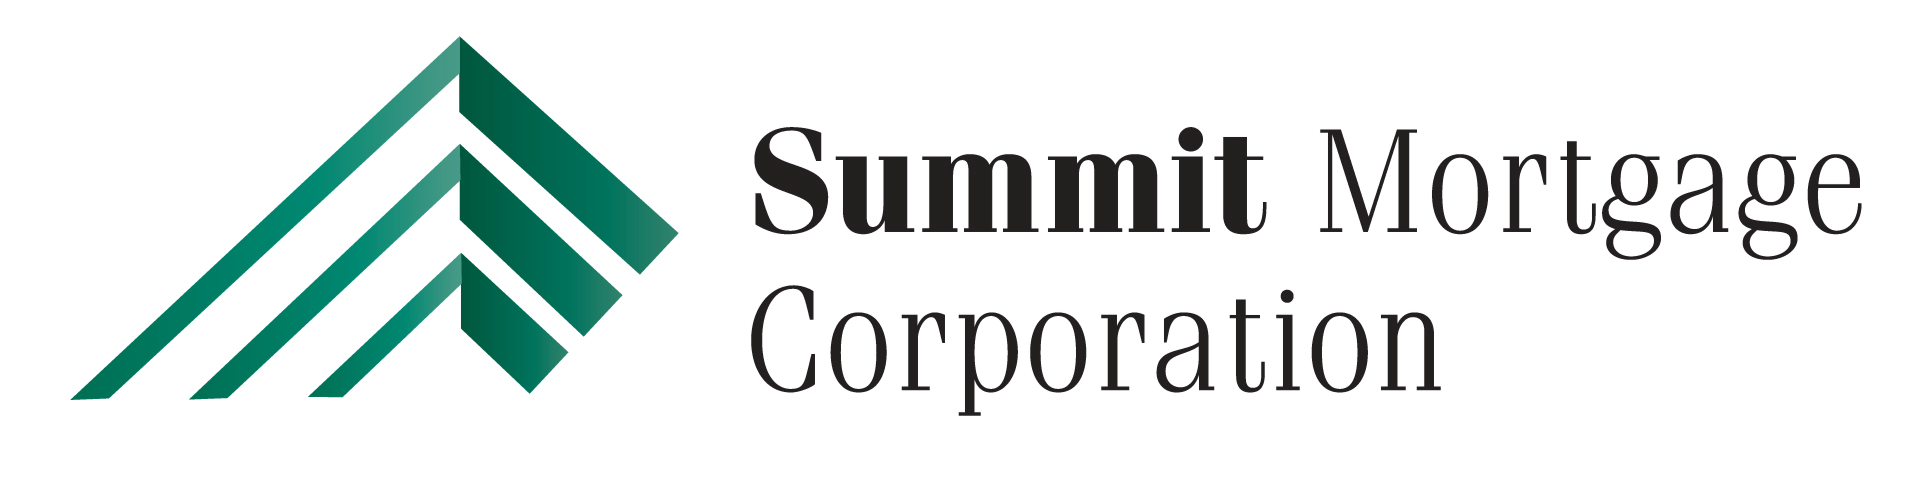 Summit Mortgage Corporation